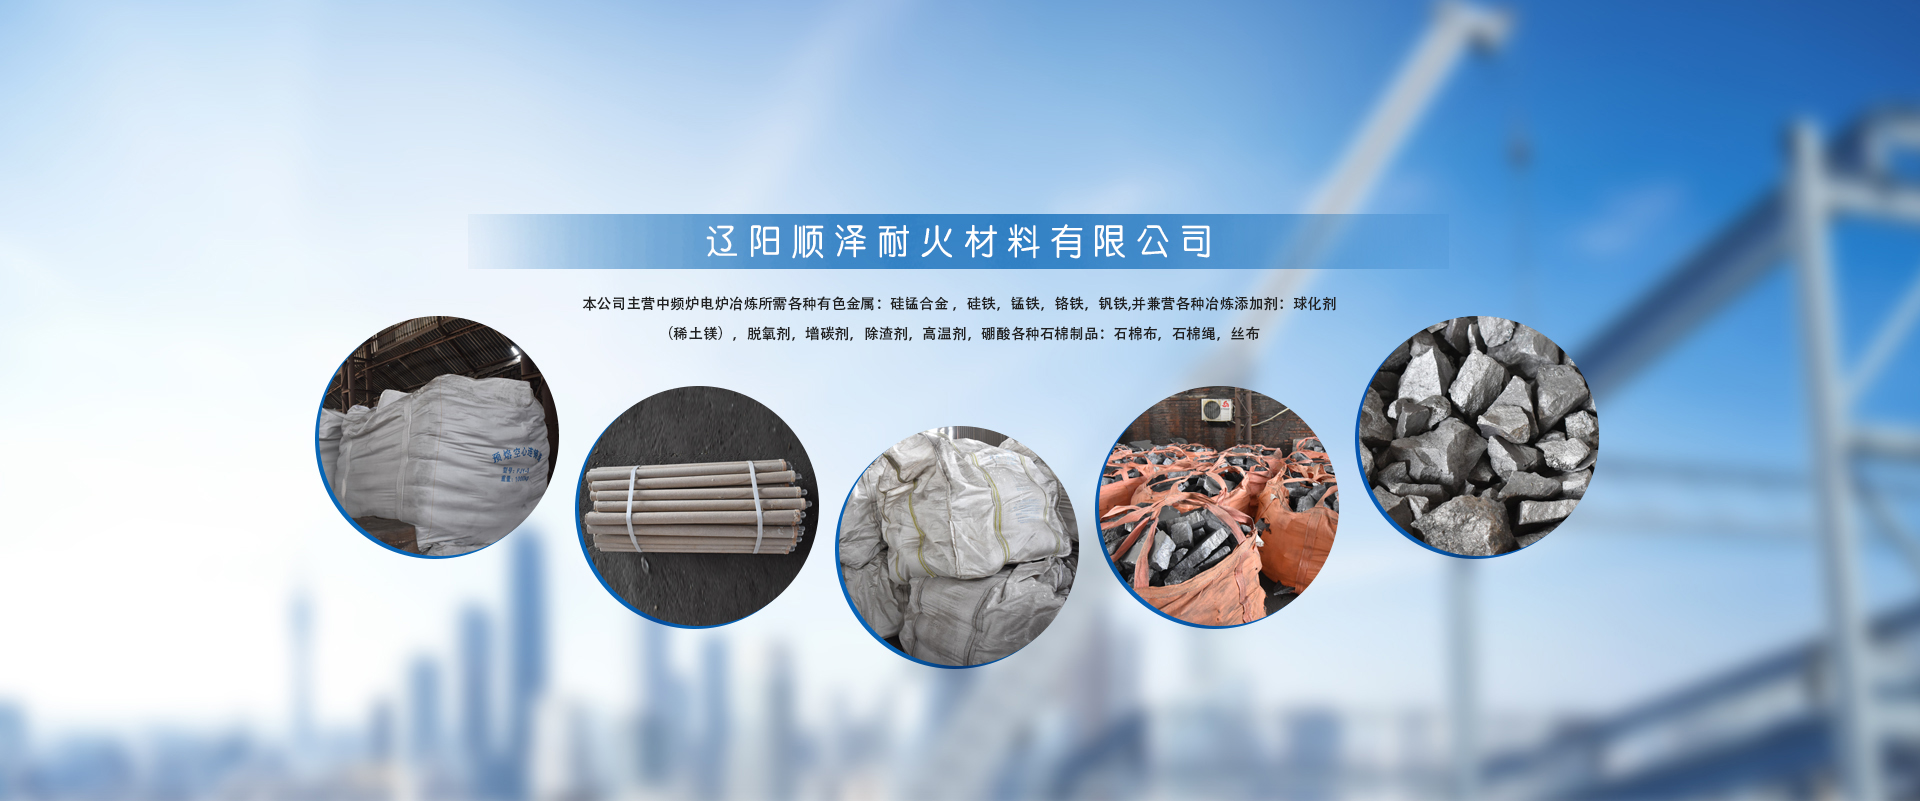 http://www.szref.cn/data/upload/202008/20200807160050_139.jpg